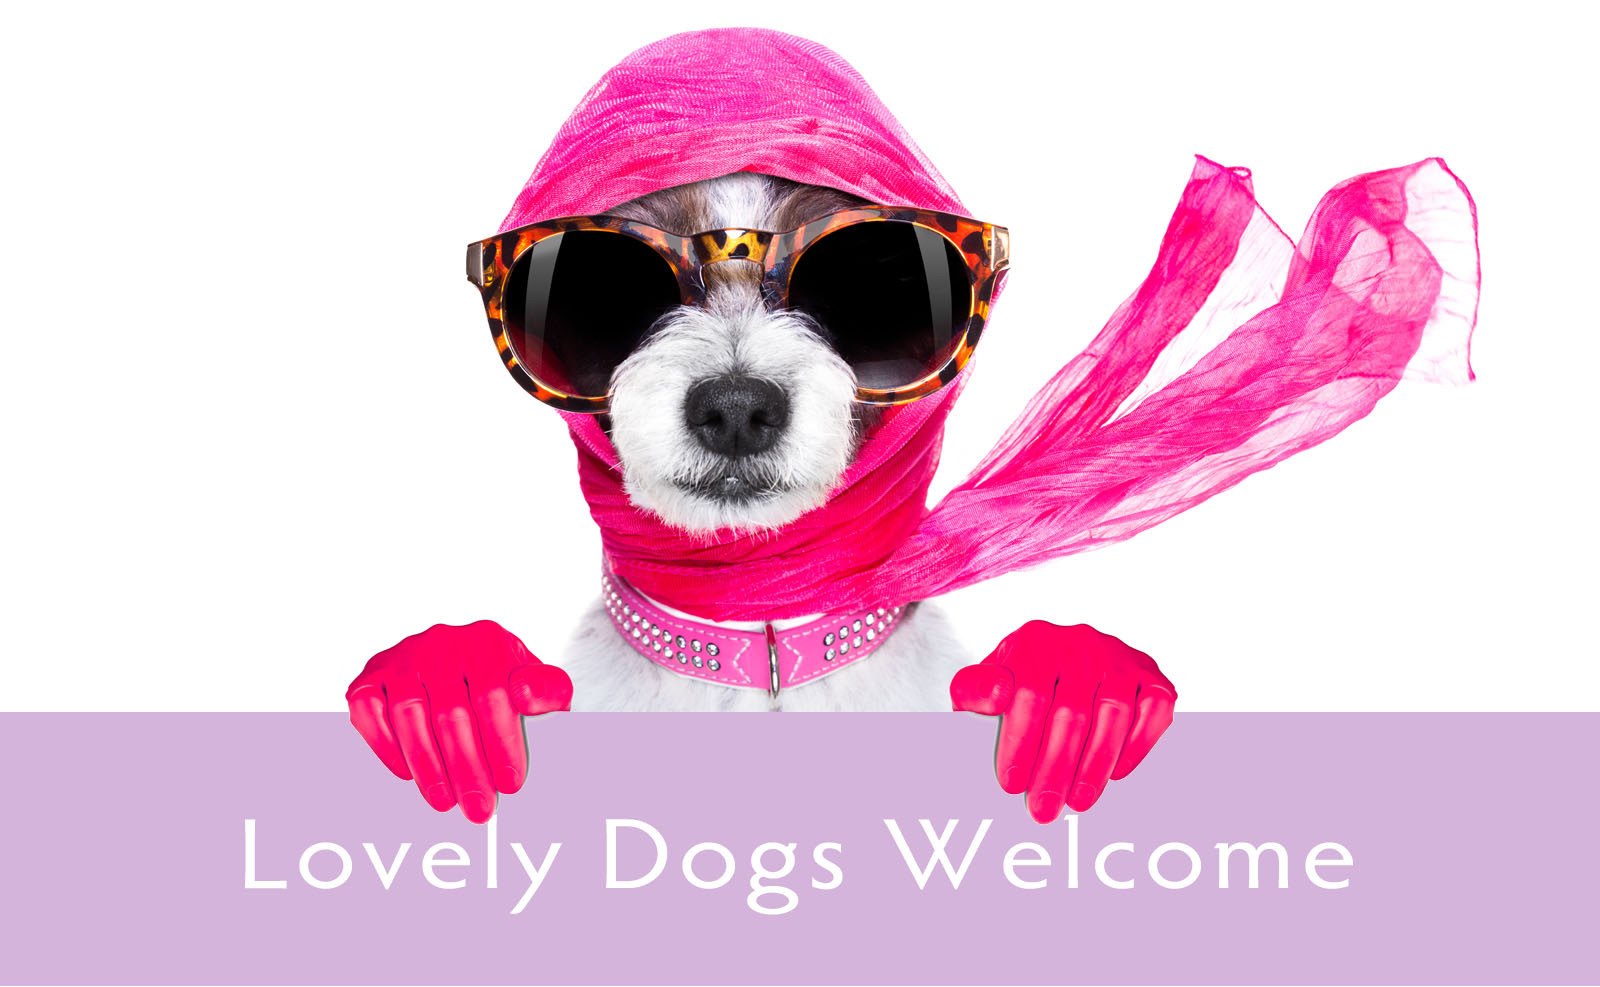 lovely dogs welcome